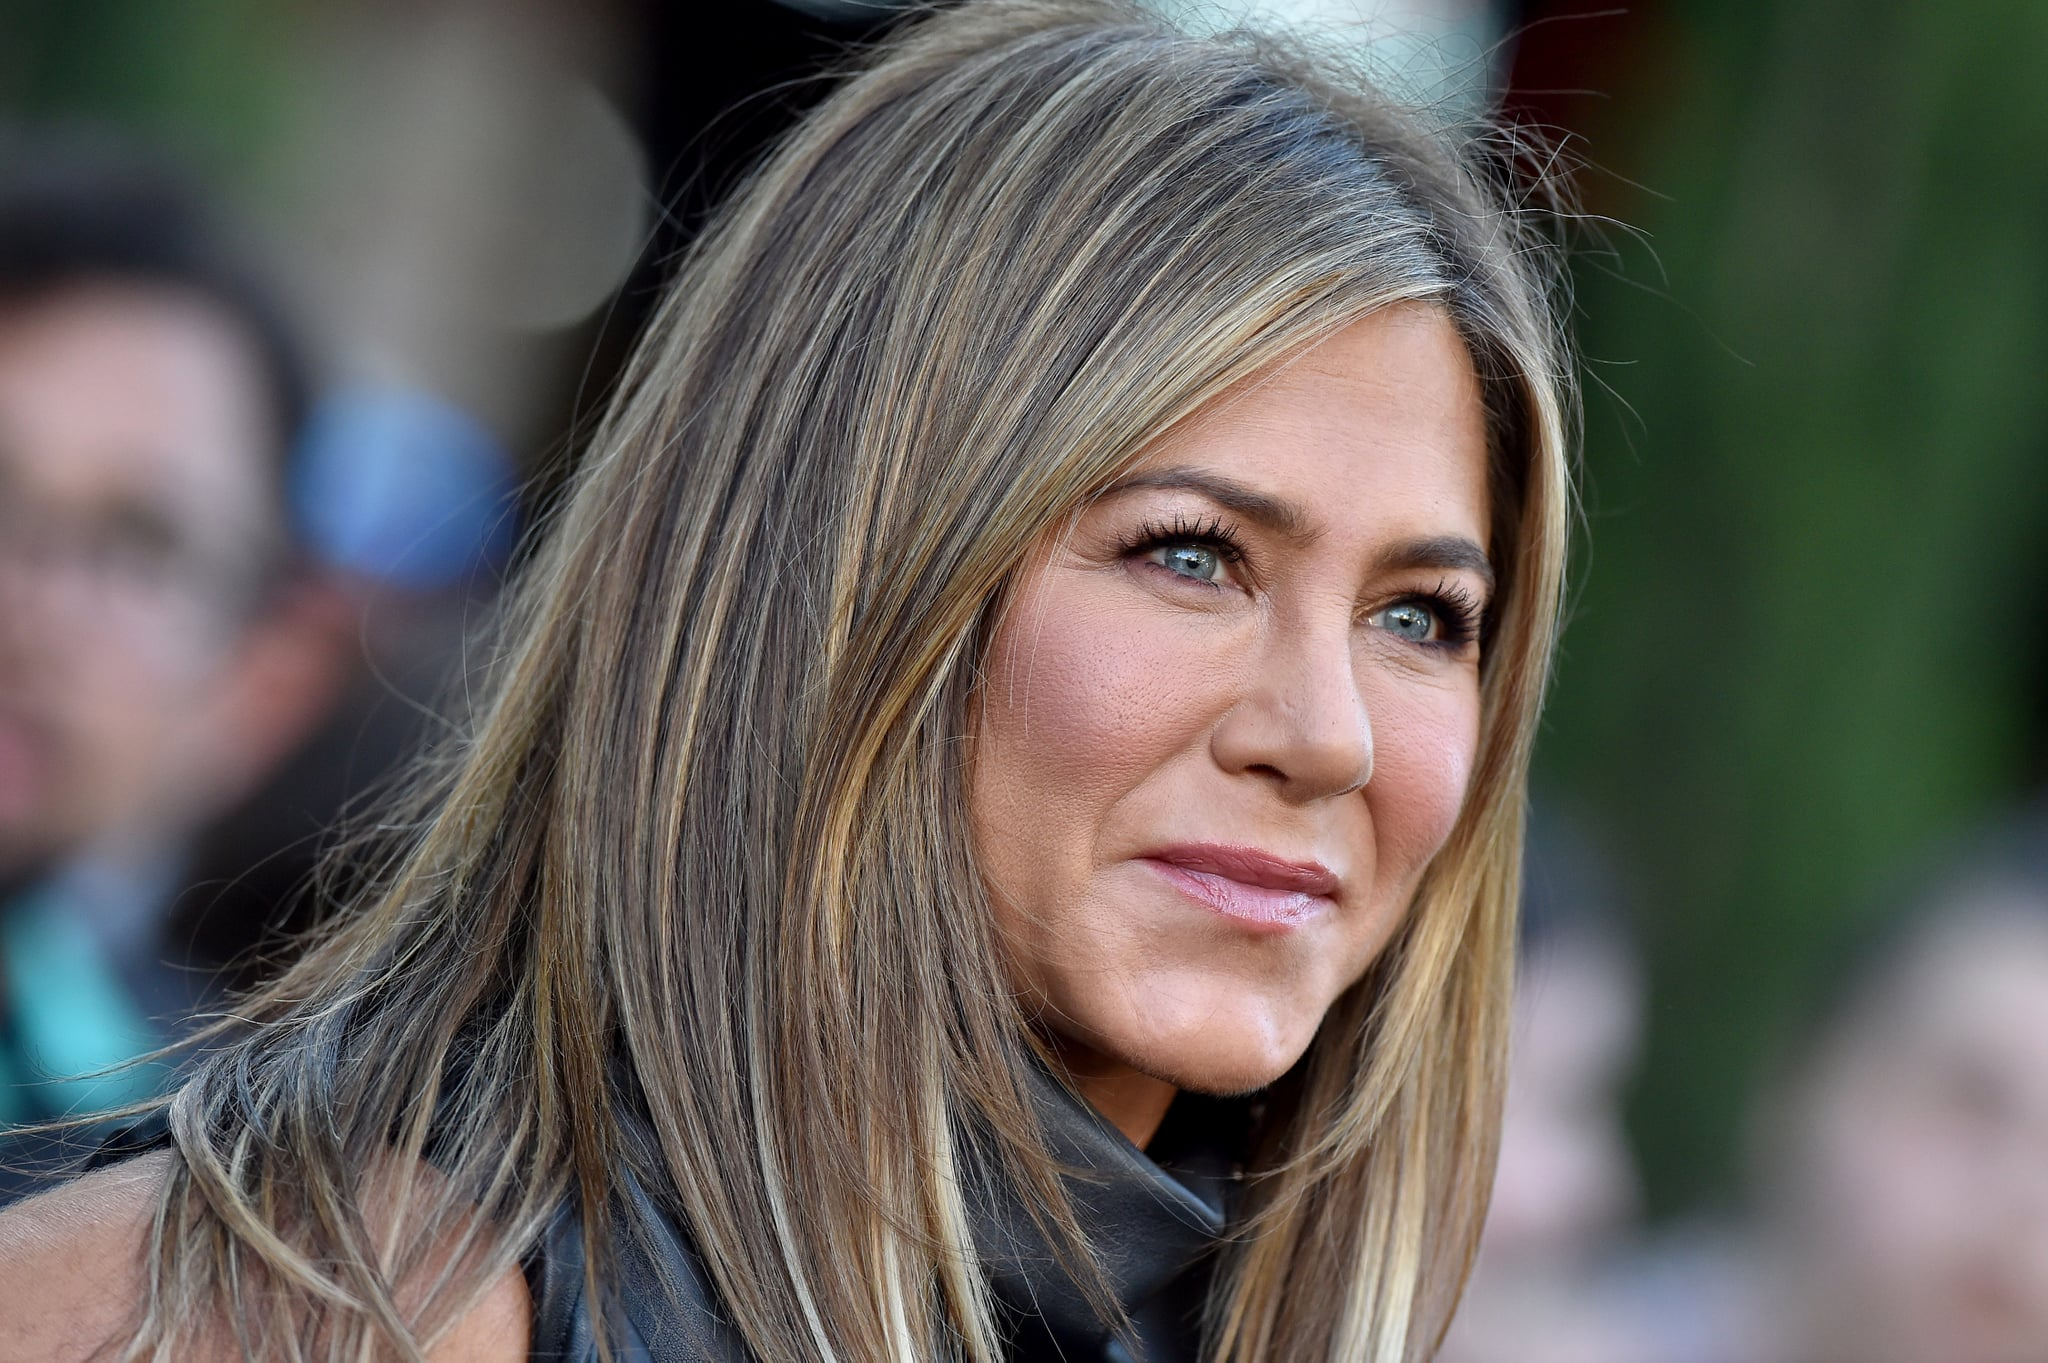 WESTWOOD, CALIFORNIA - JUNE 10: Jennifer Aniston attends the LA Premiere of Netflix's